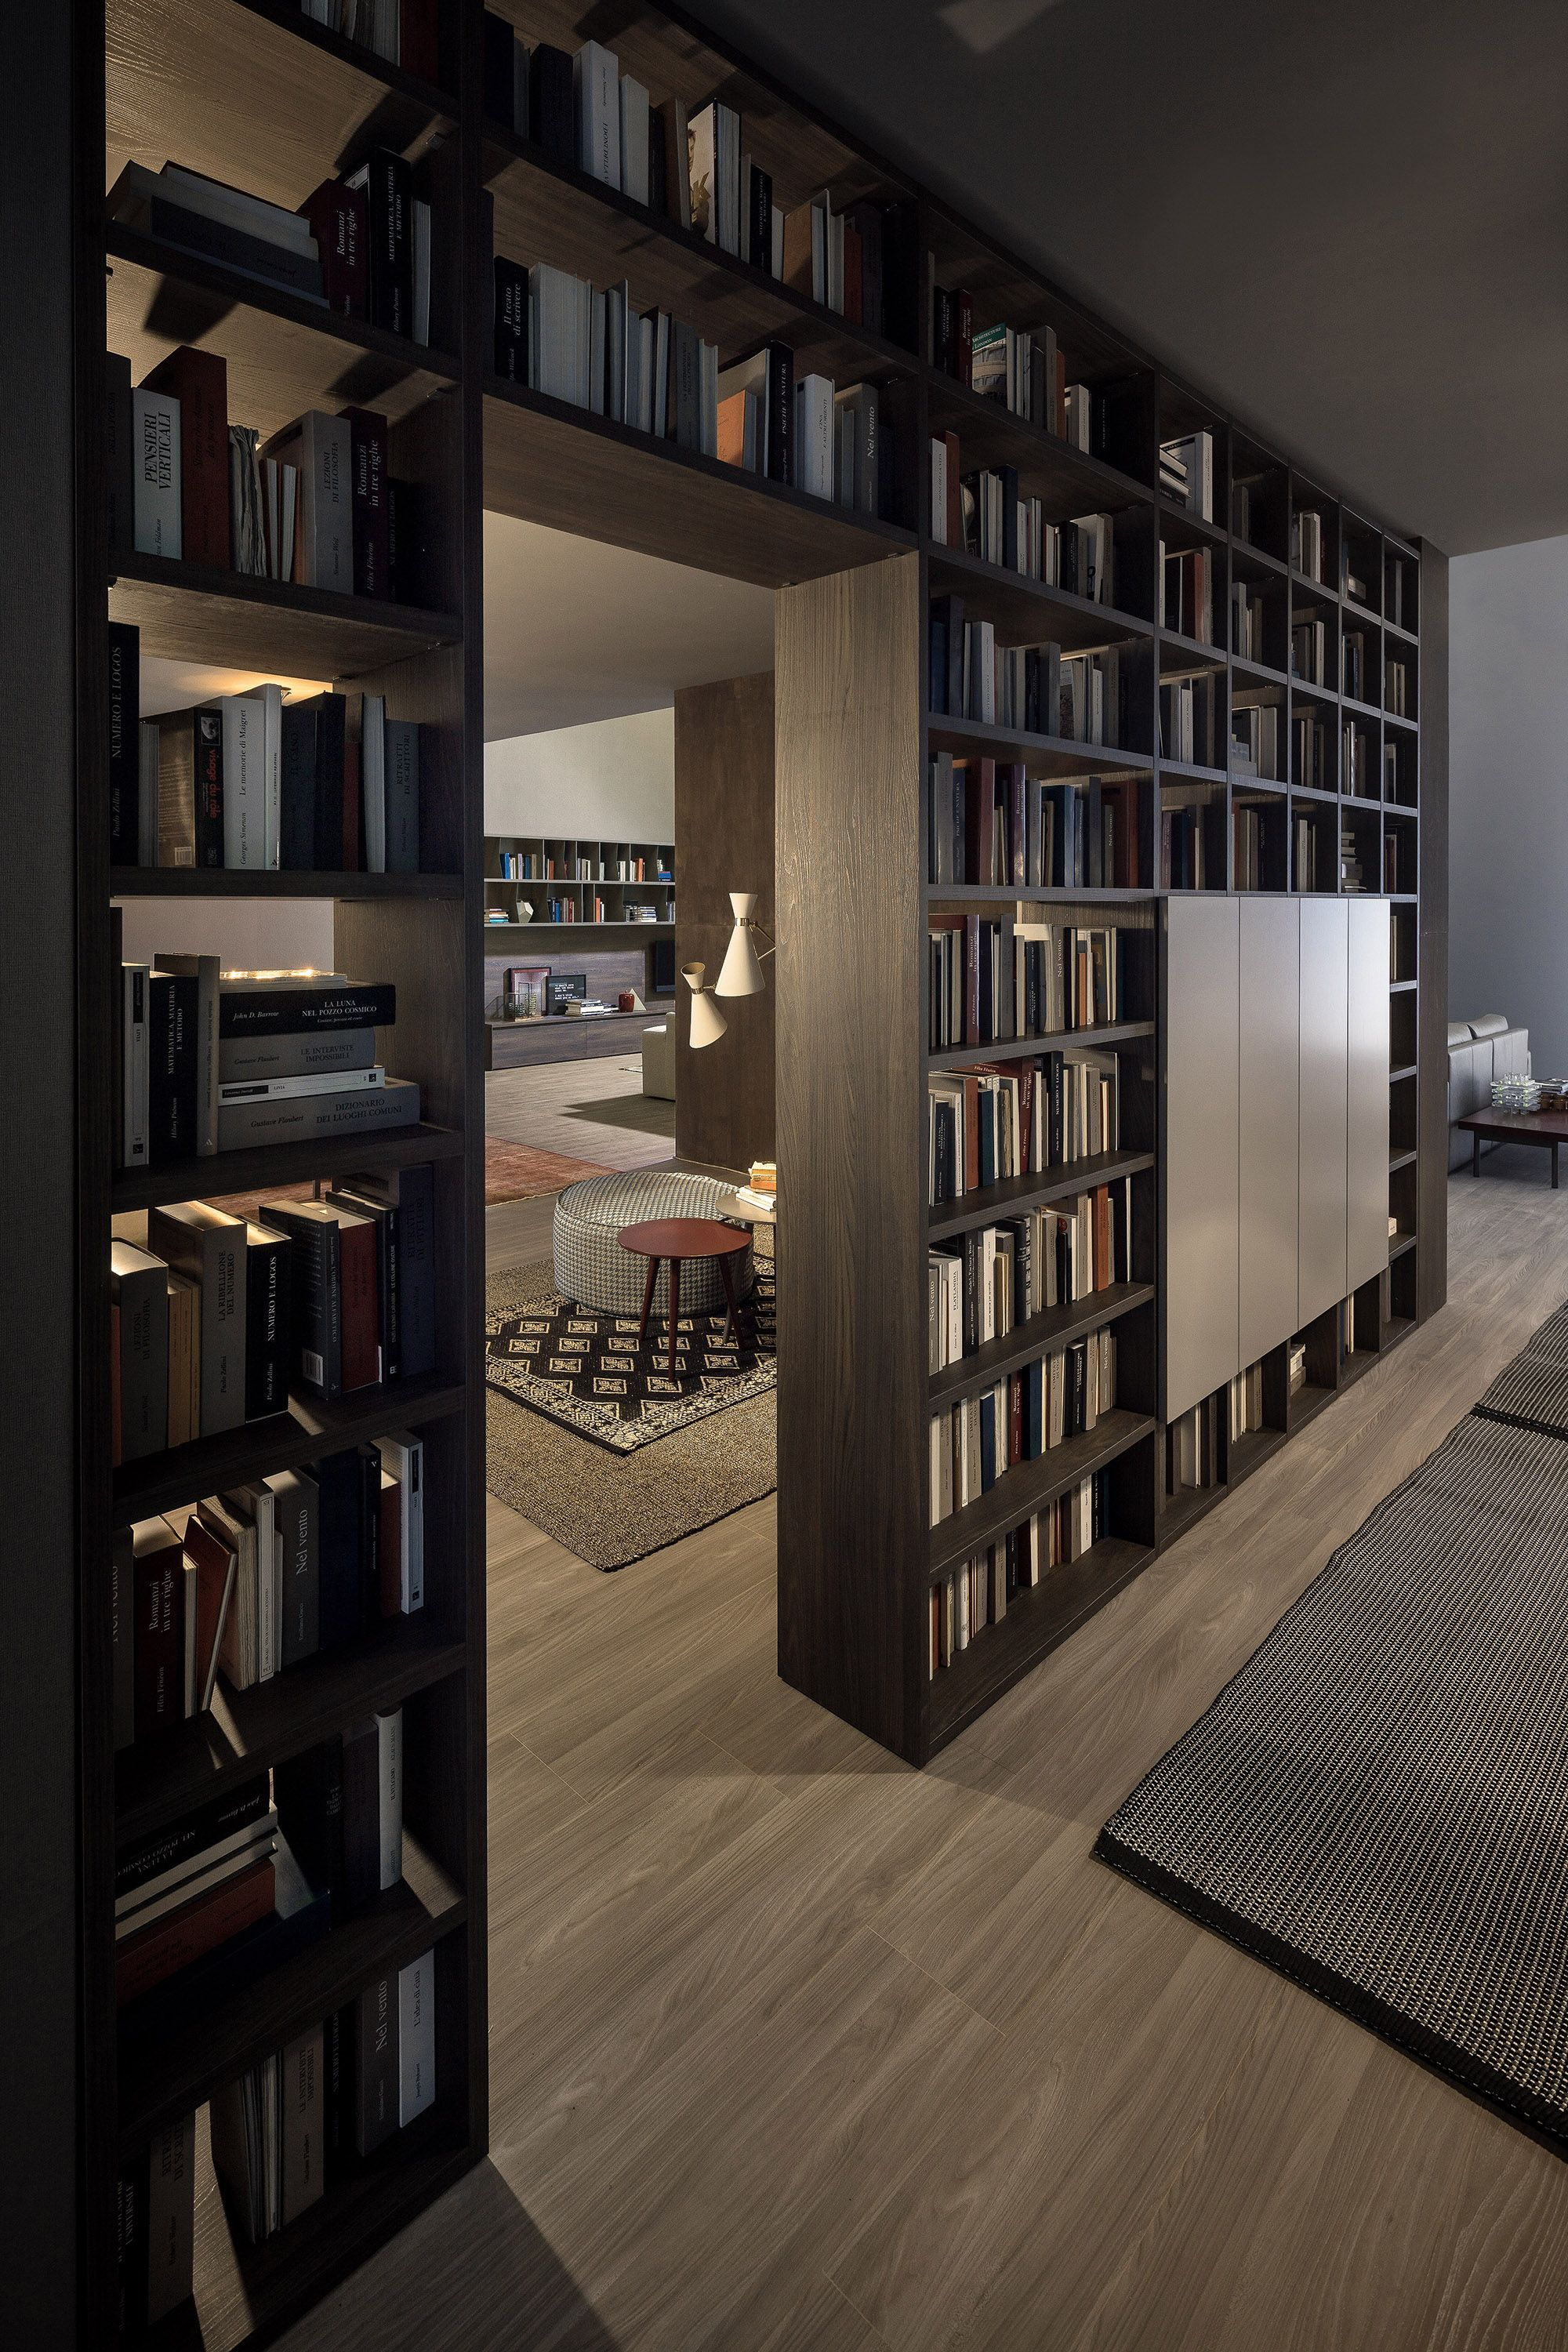 Bookcase As Room Divider Projects To Try Ap Md In 2019 Home